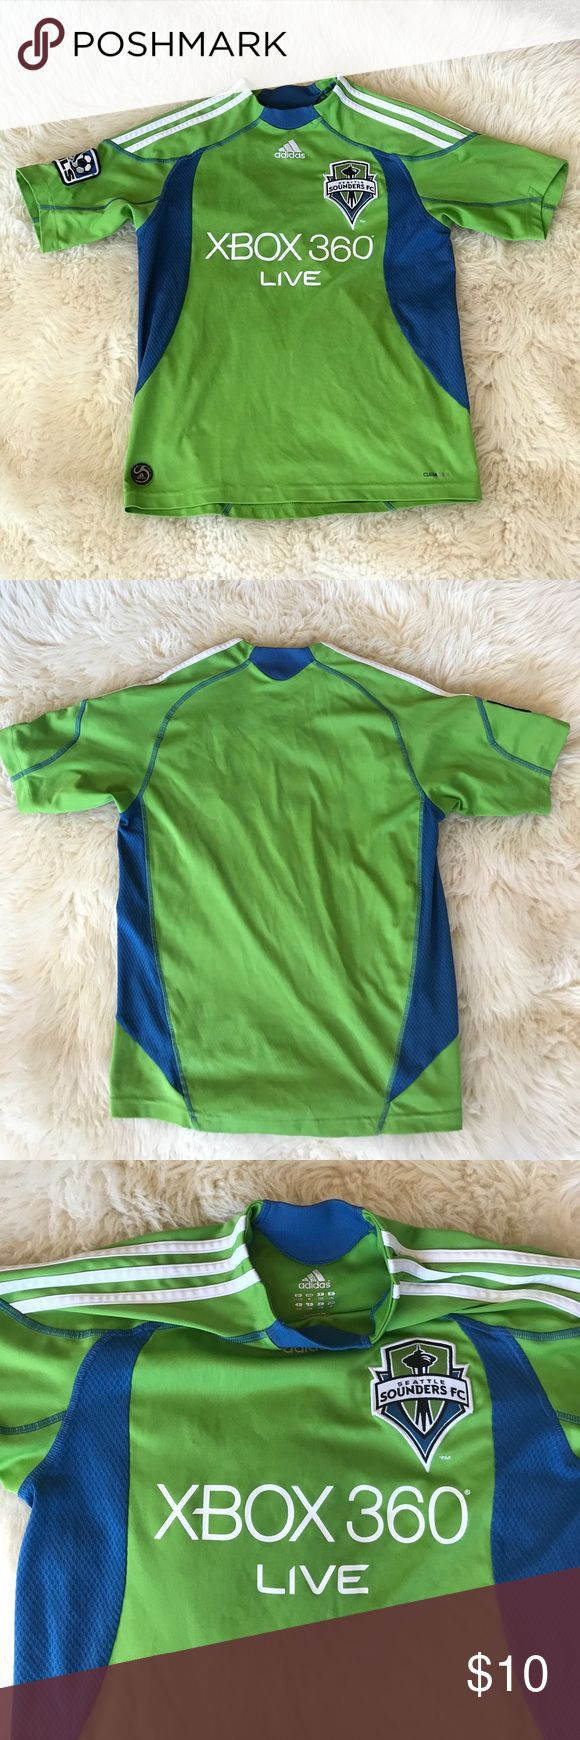 ADIDAS SEATTLE SOUNDERS FC SOCCER TOP Really good shape soccer top by Adidas Adidas Shirts & Tops Tees - Short Sleeve